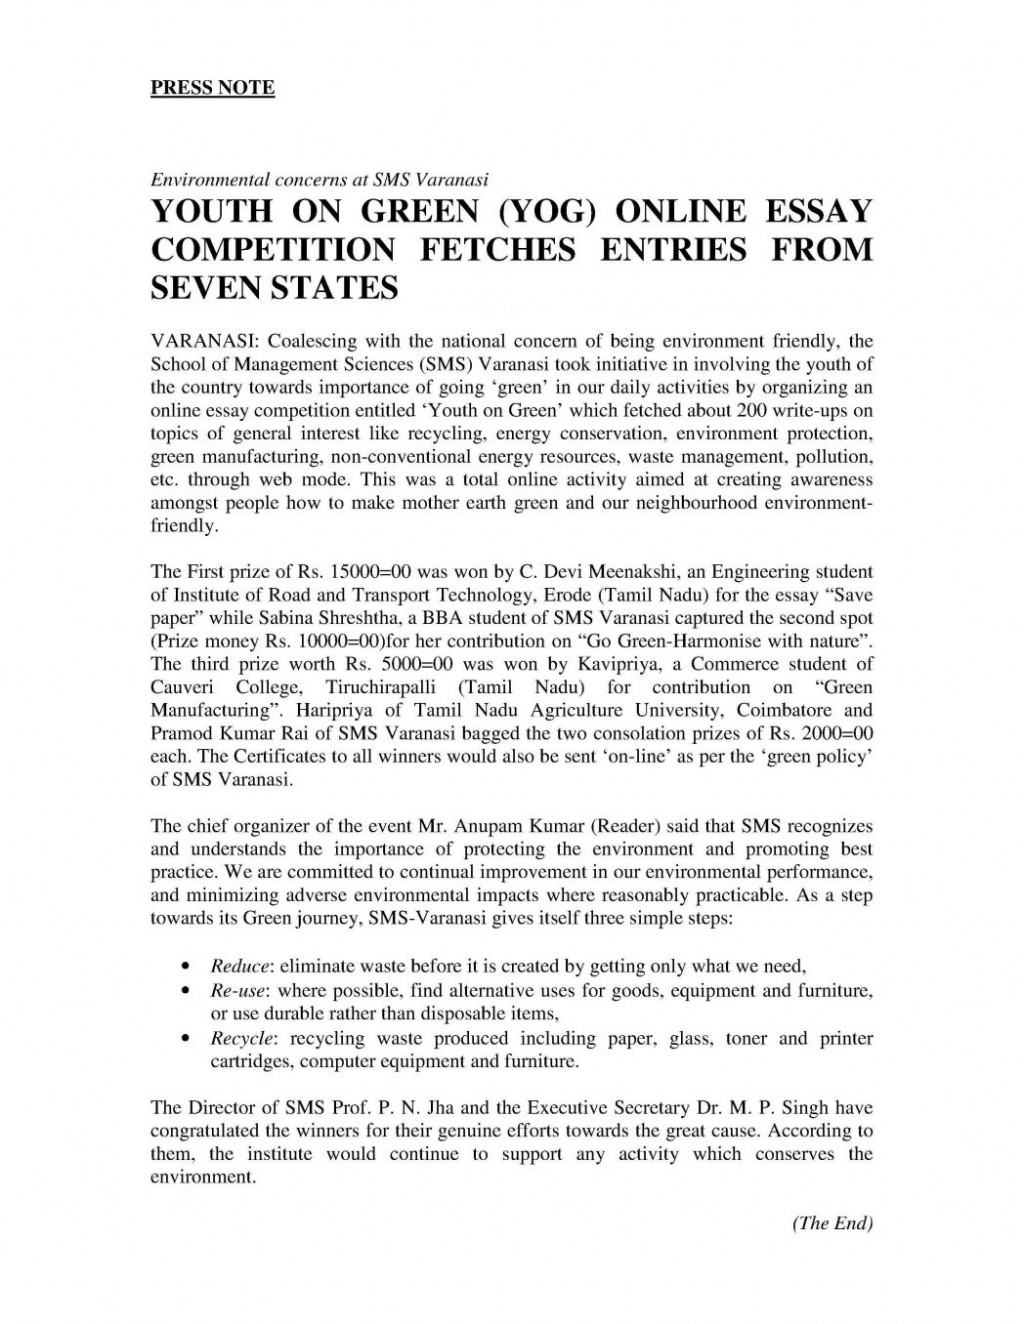 020 Best Essays For College Essay On Good Habits How Tot Application Online Yog Press Re About Yourself Examples Your Background Failure Prompt Off Hook 1048x1356 Example Amazing To Start An Write A Paper Climate Change Expository With Quote Format Large